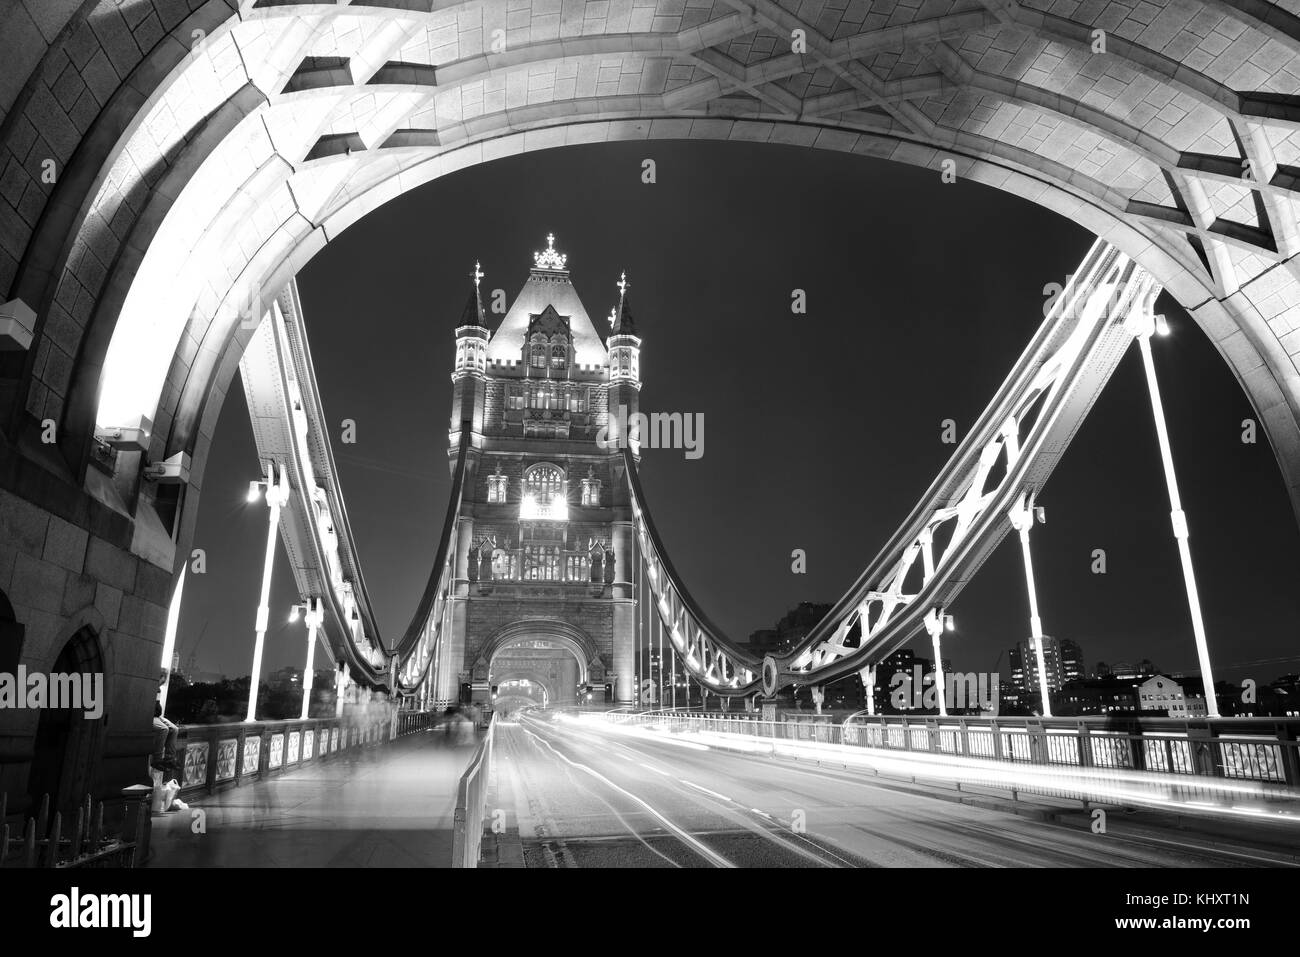 Tower Bridge in London with busy traffic at night. - Stock Image